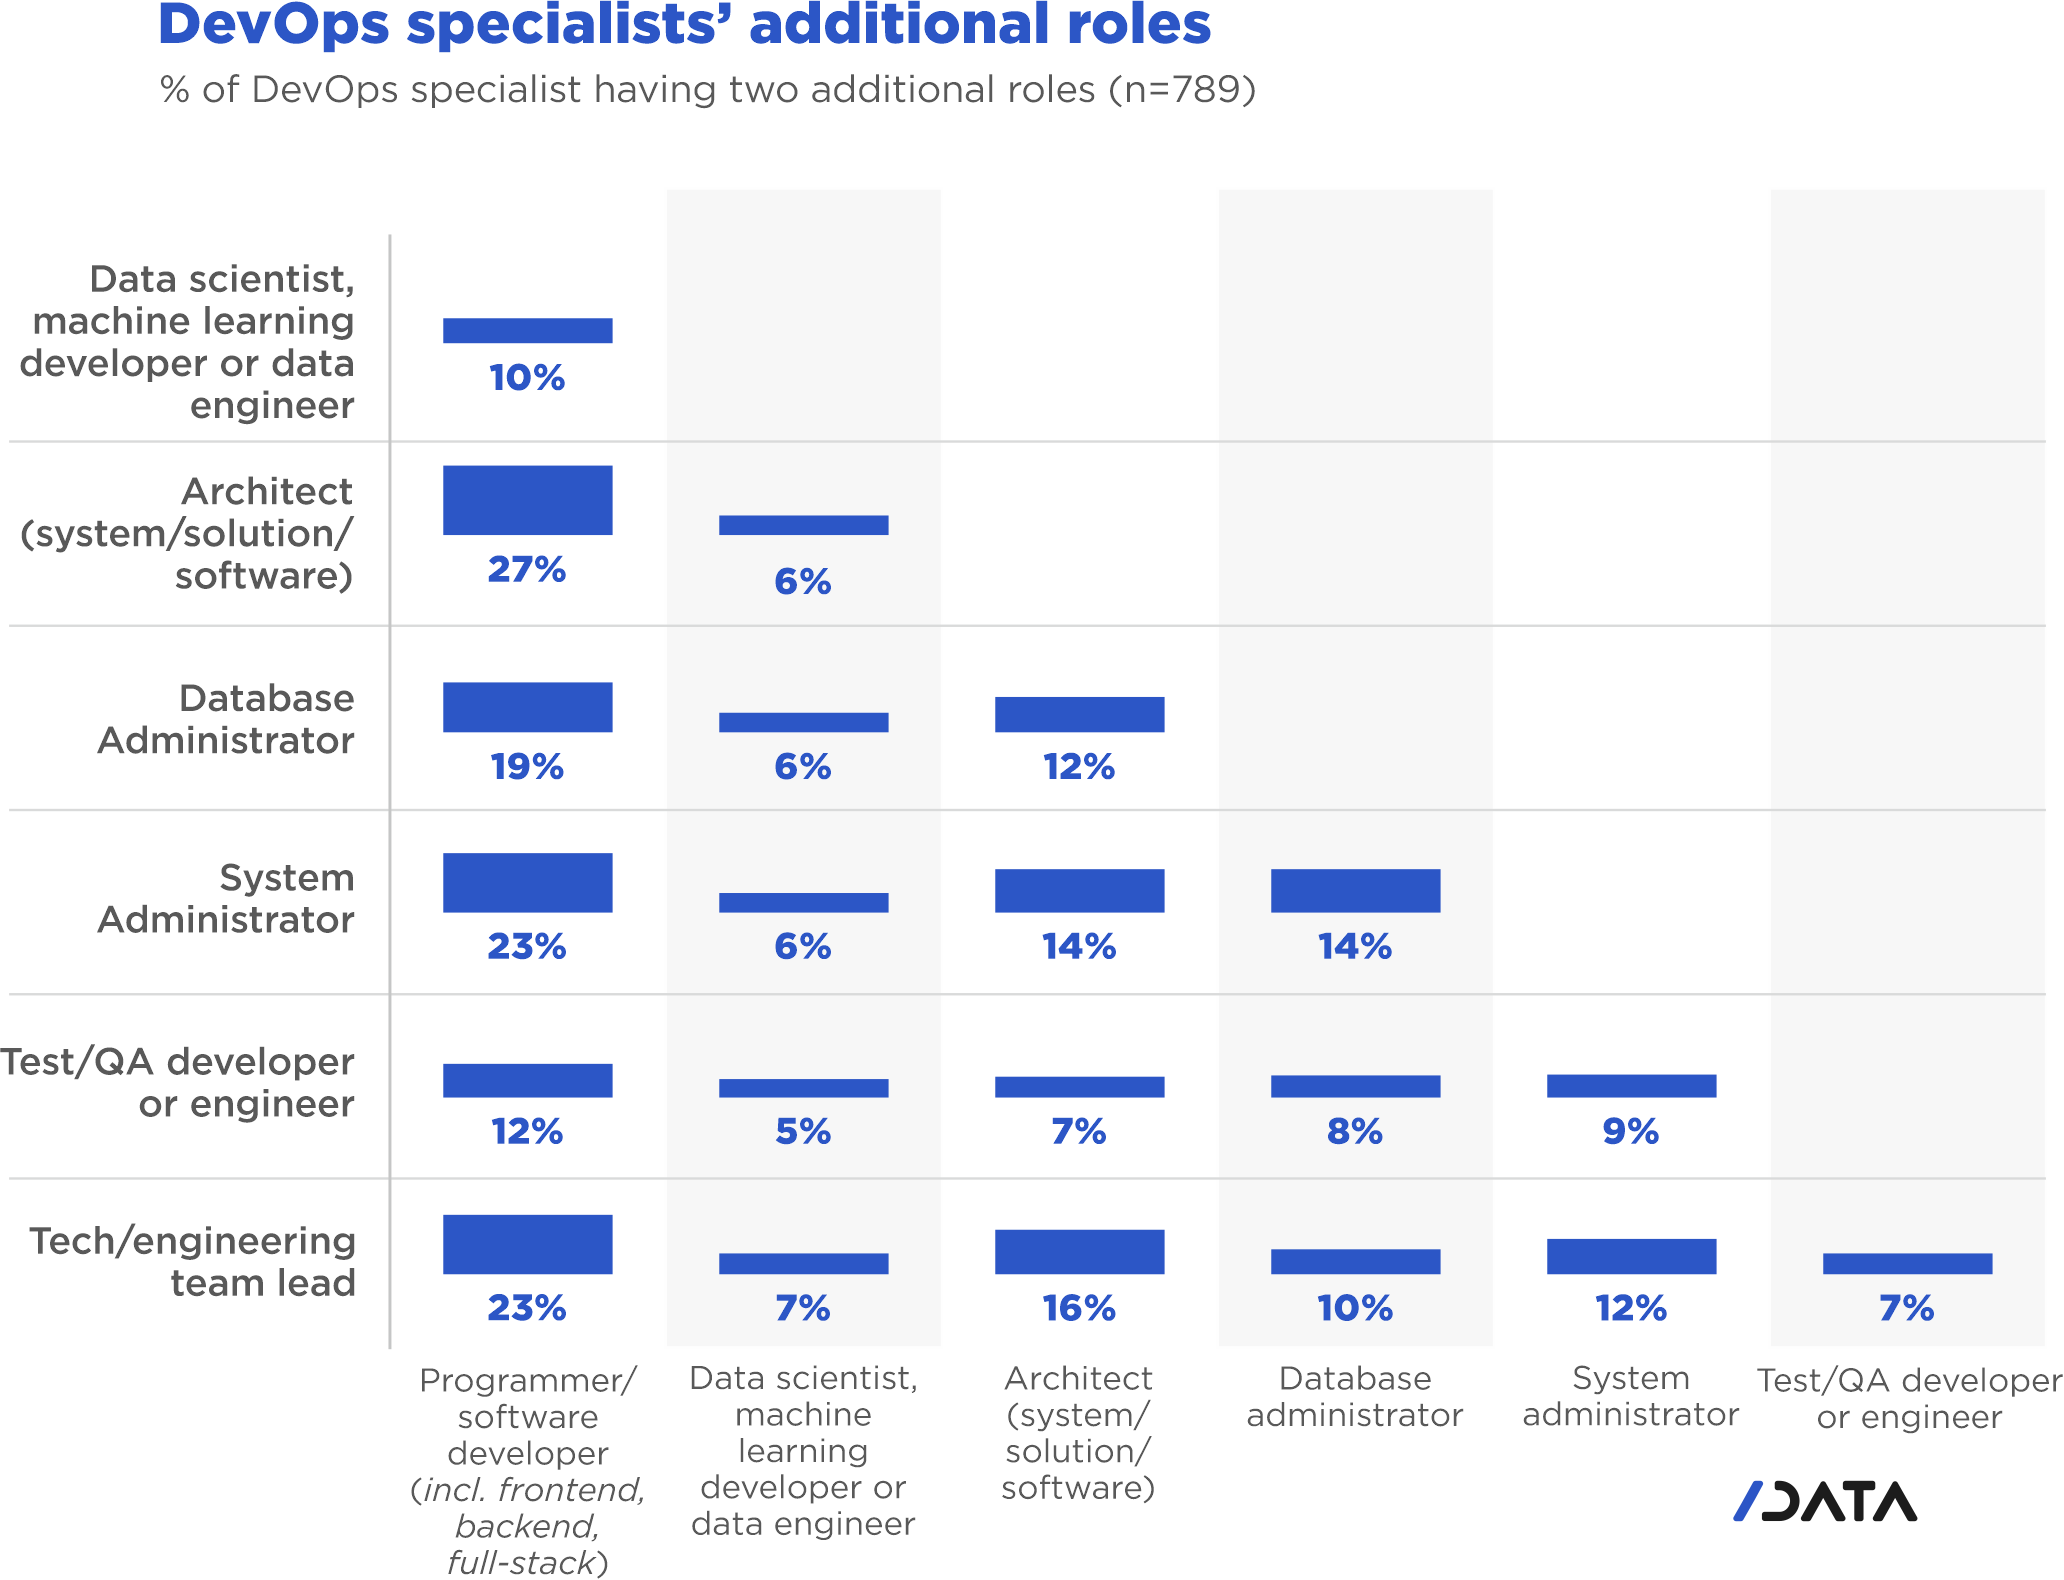 DevOps specialists' additional roles